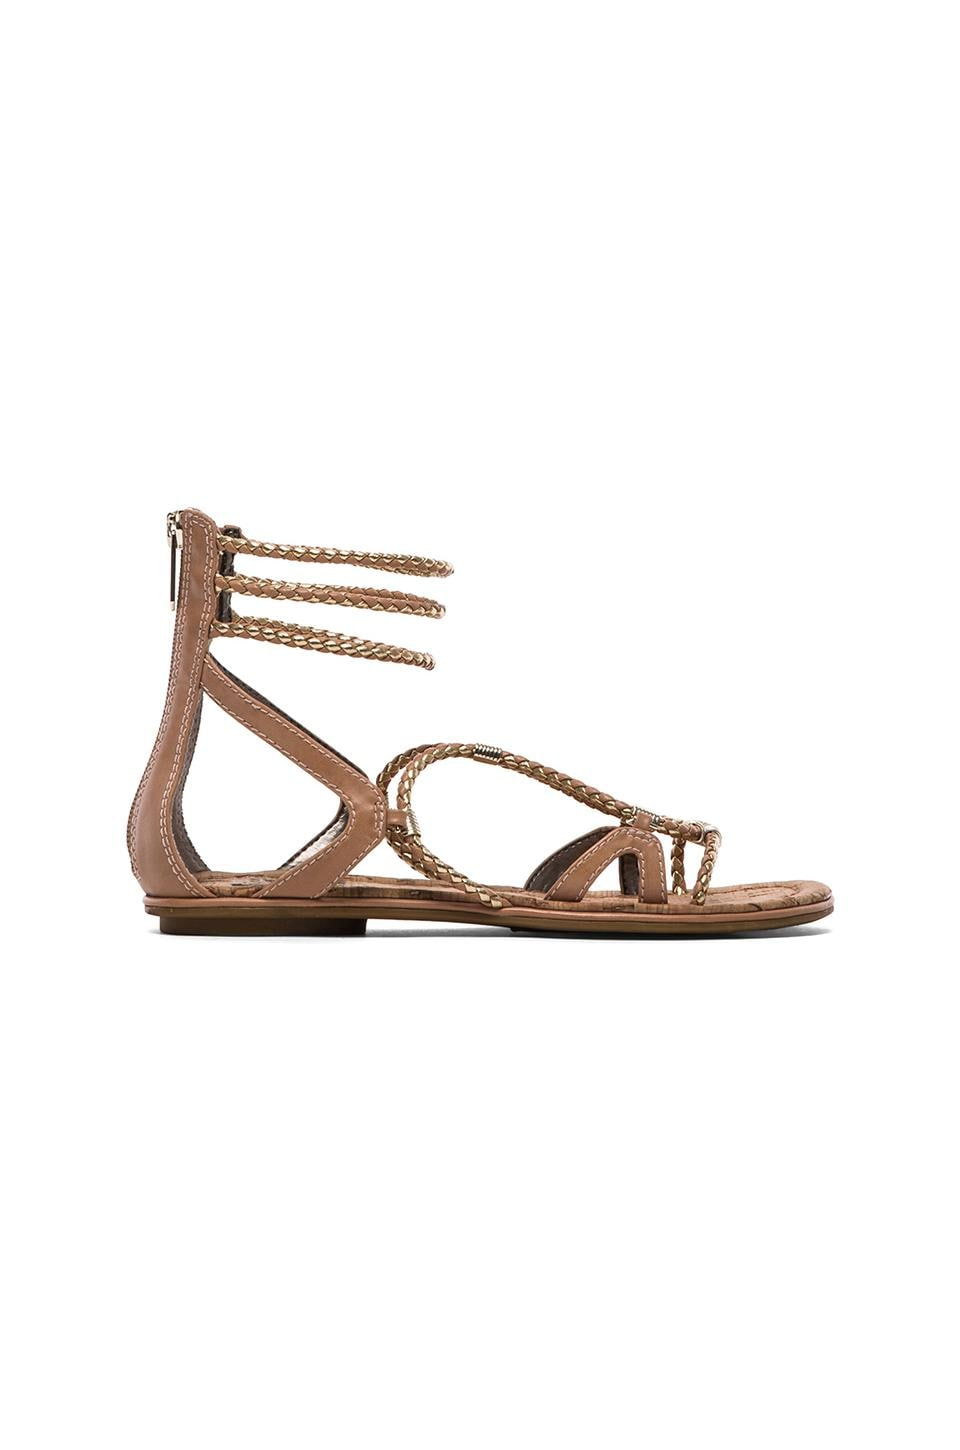 Circus by Sam Edelman Sandria Sandal in Natural & Gold